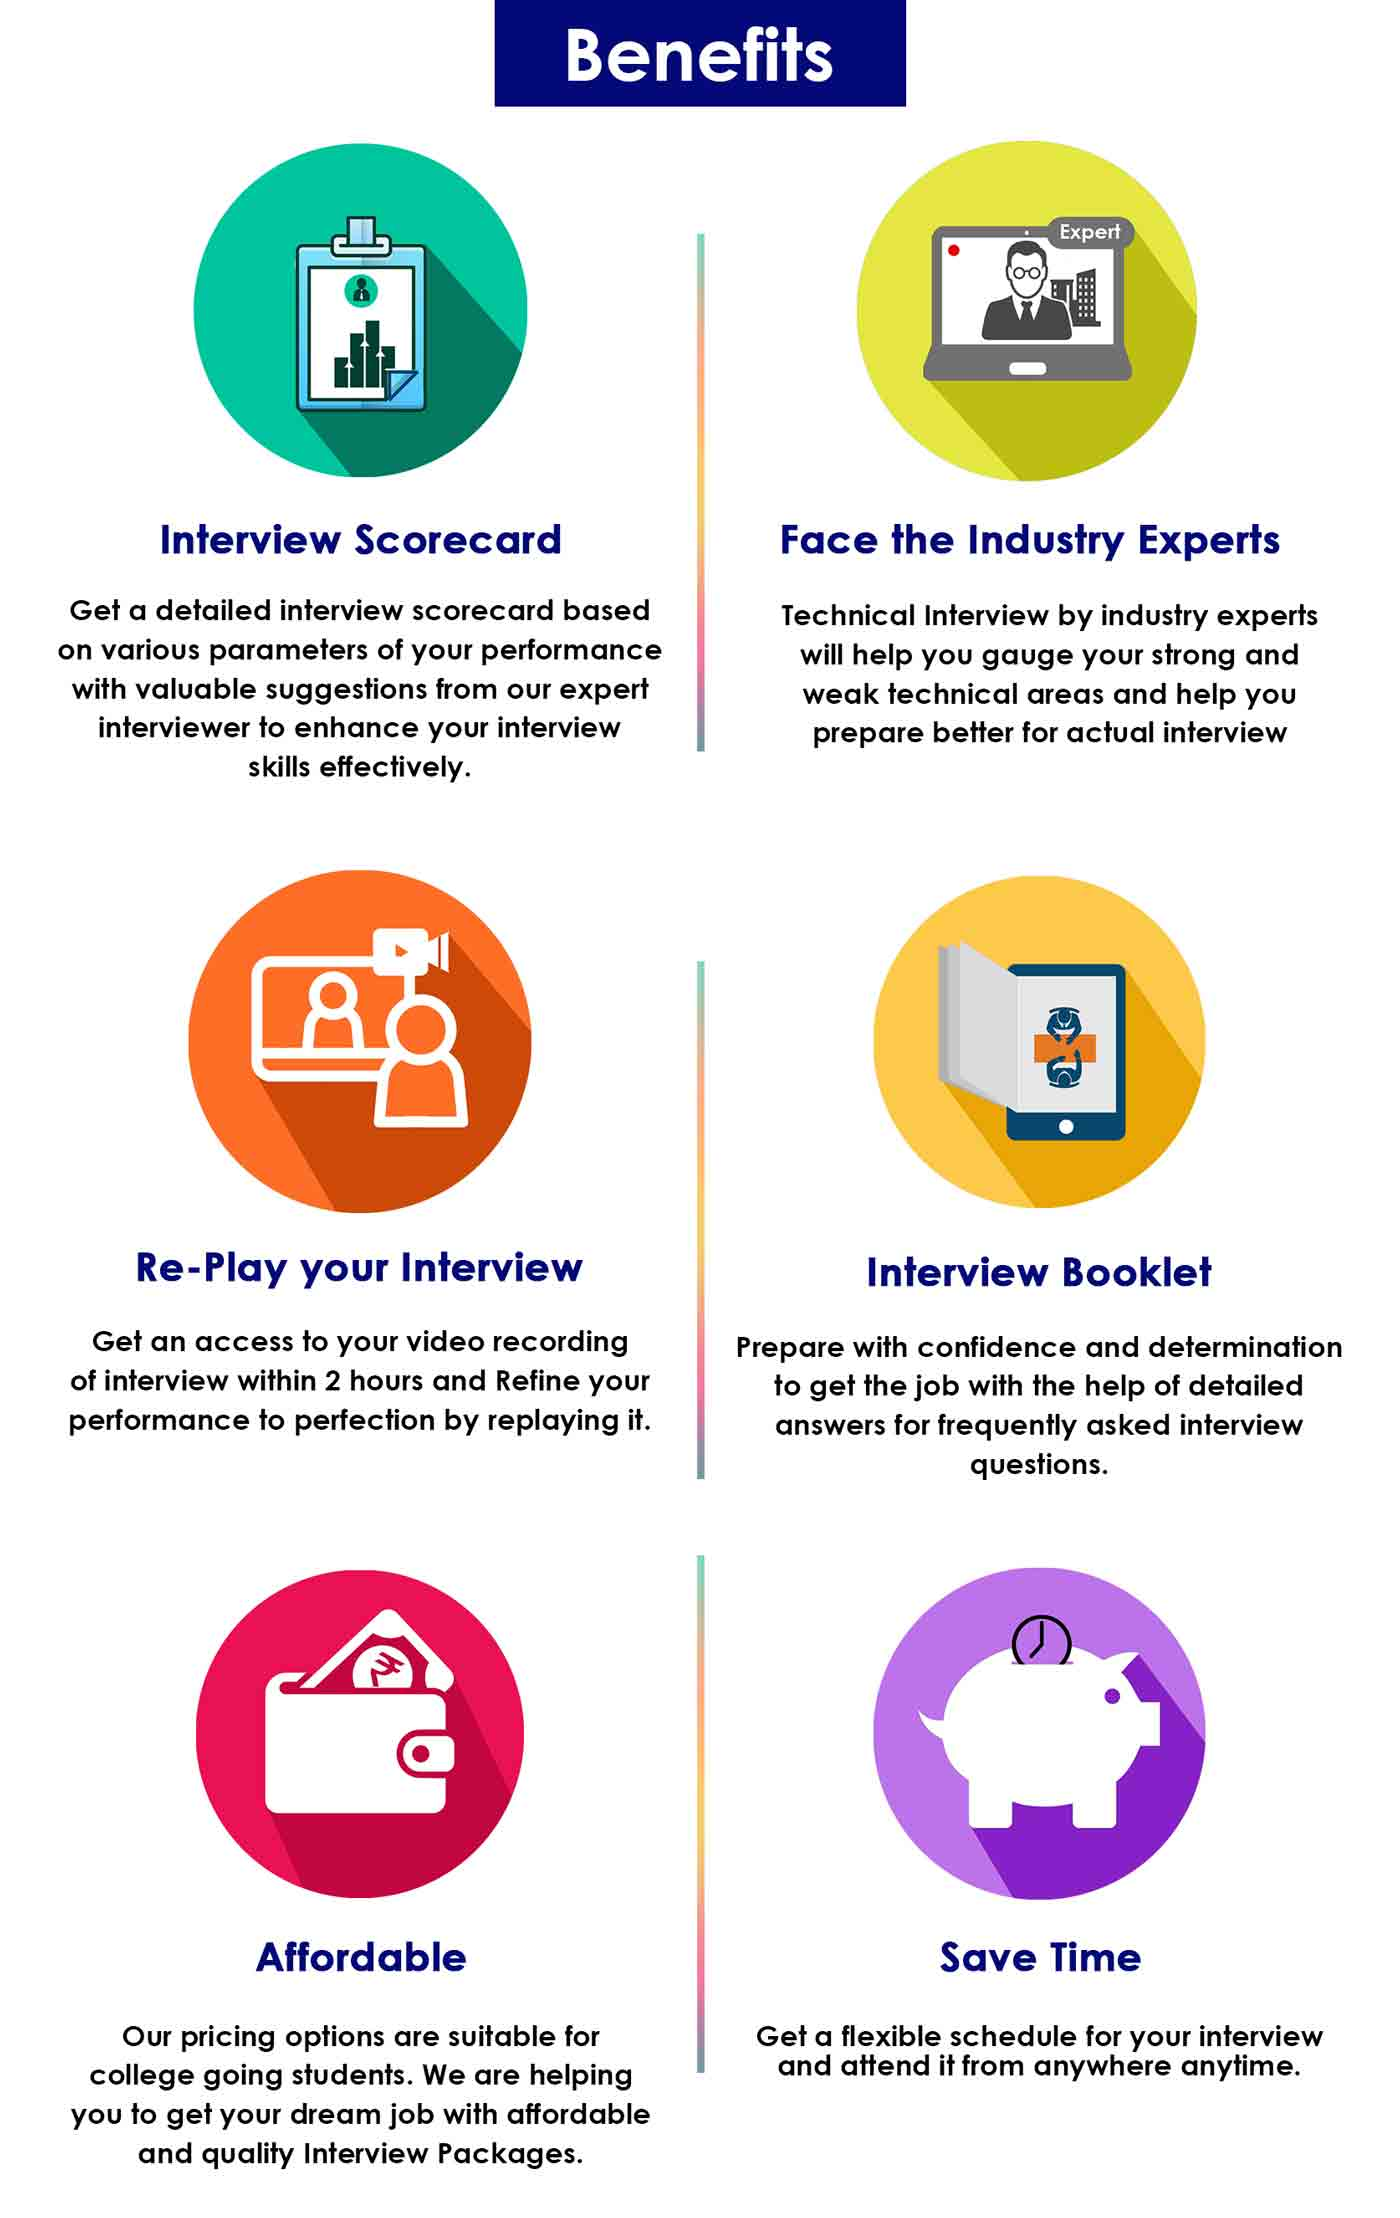 Wipro Elite NTH Online Mock Interview